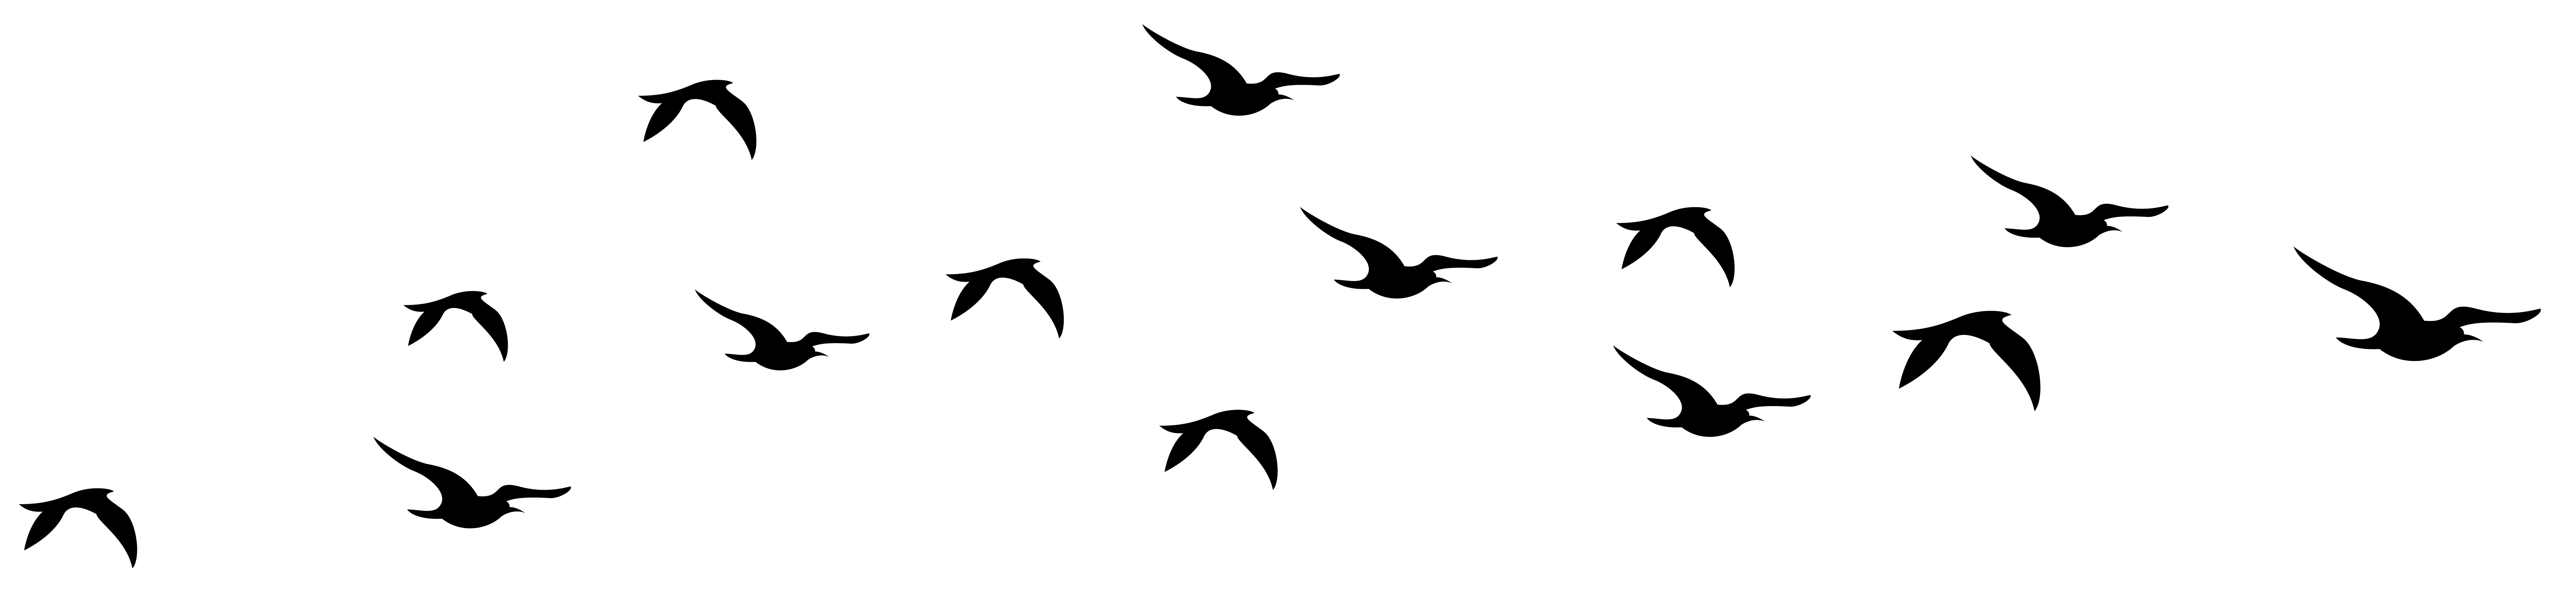 Bird and cross clipart picture Silhouette Birds Tattoo at GetDrawings.com | Free for personal use ... picture